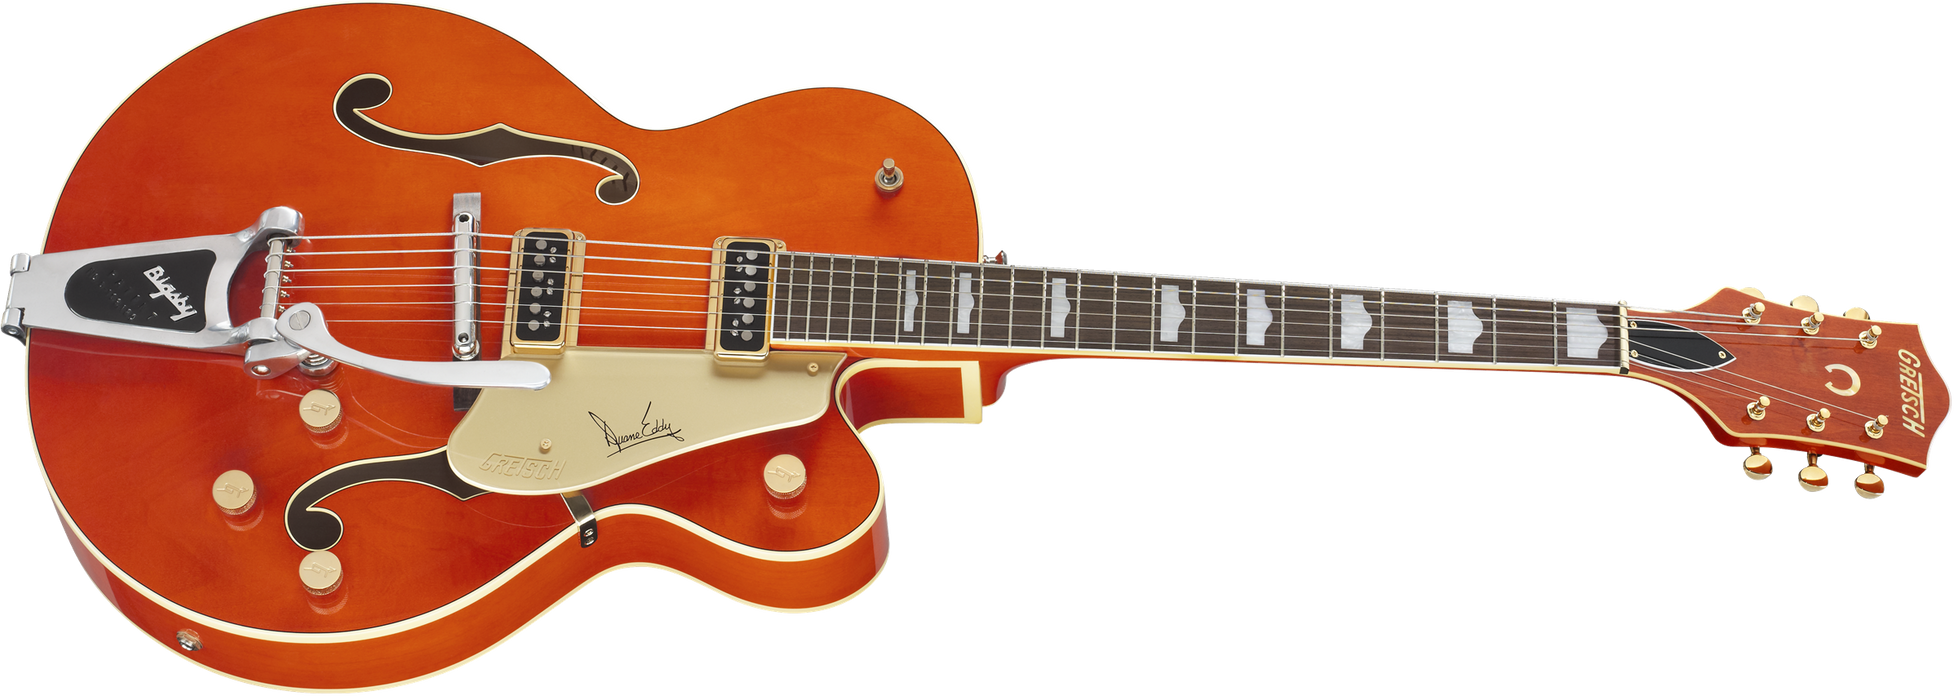 Gretsch G6120DE Duane Eddy Signature Hollow Body with Bigsby Desert Sunrise